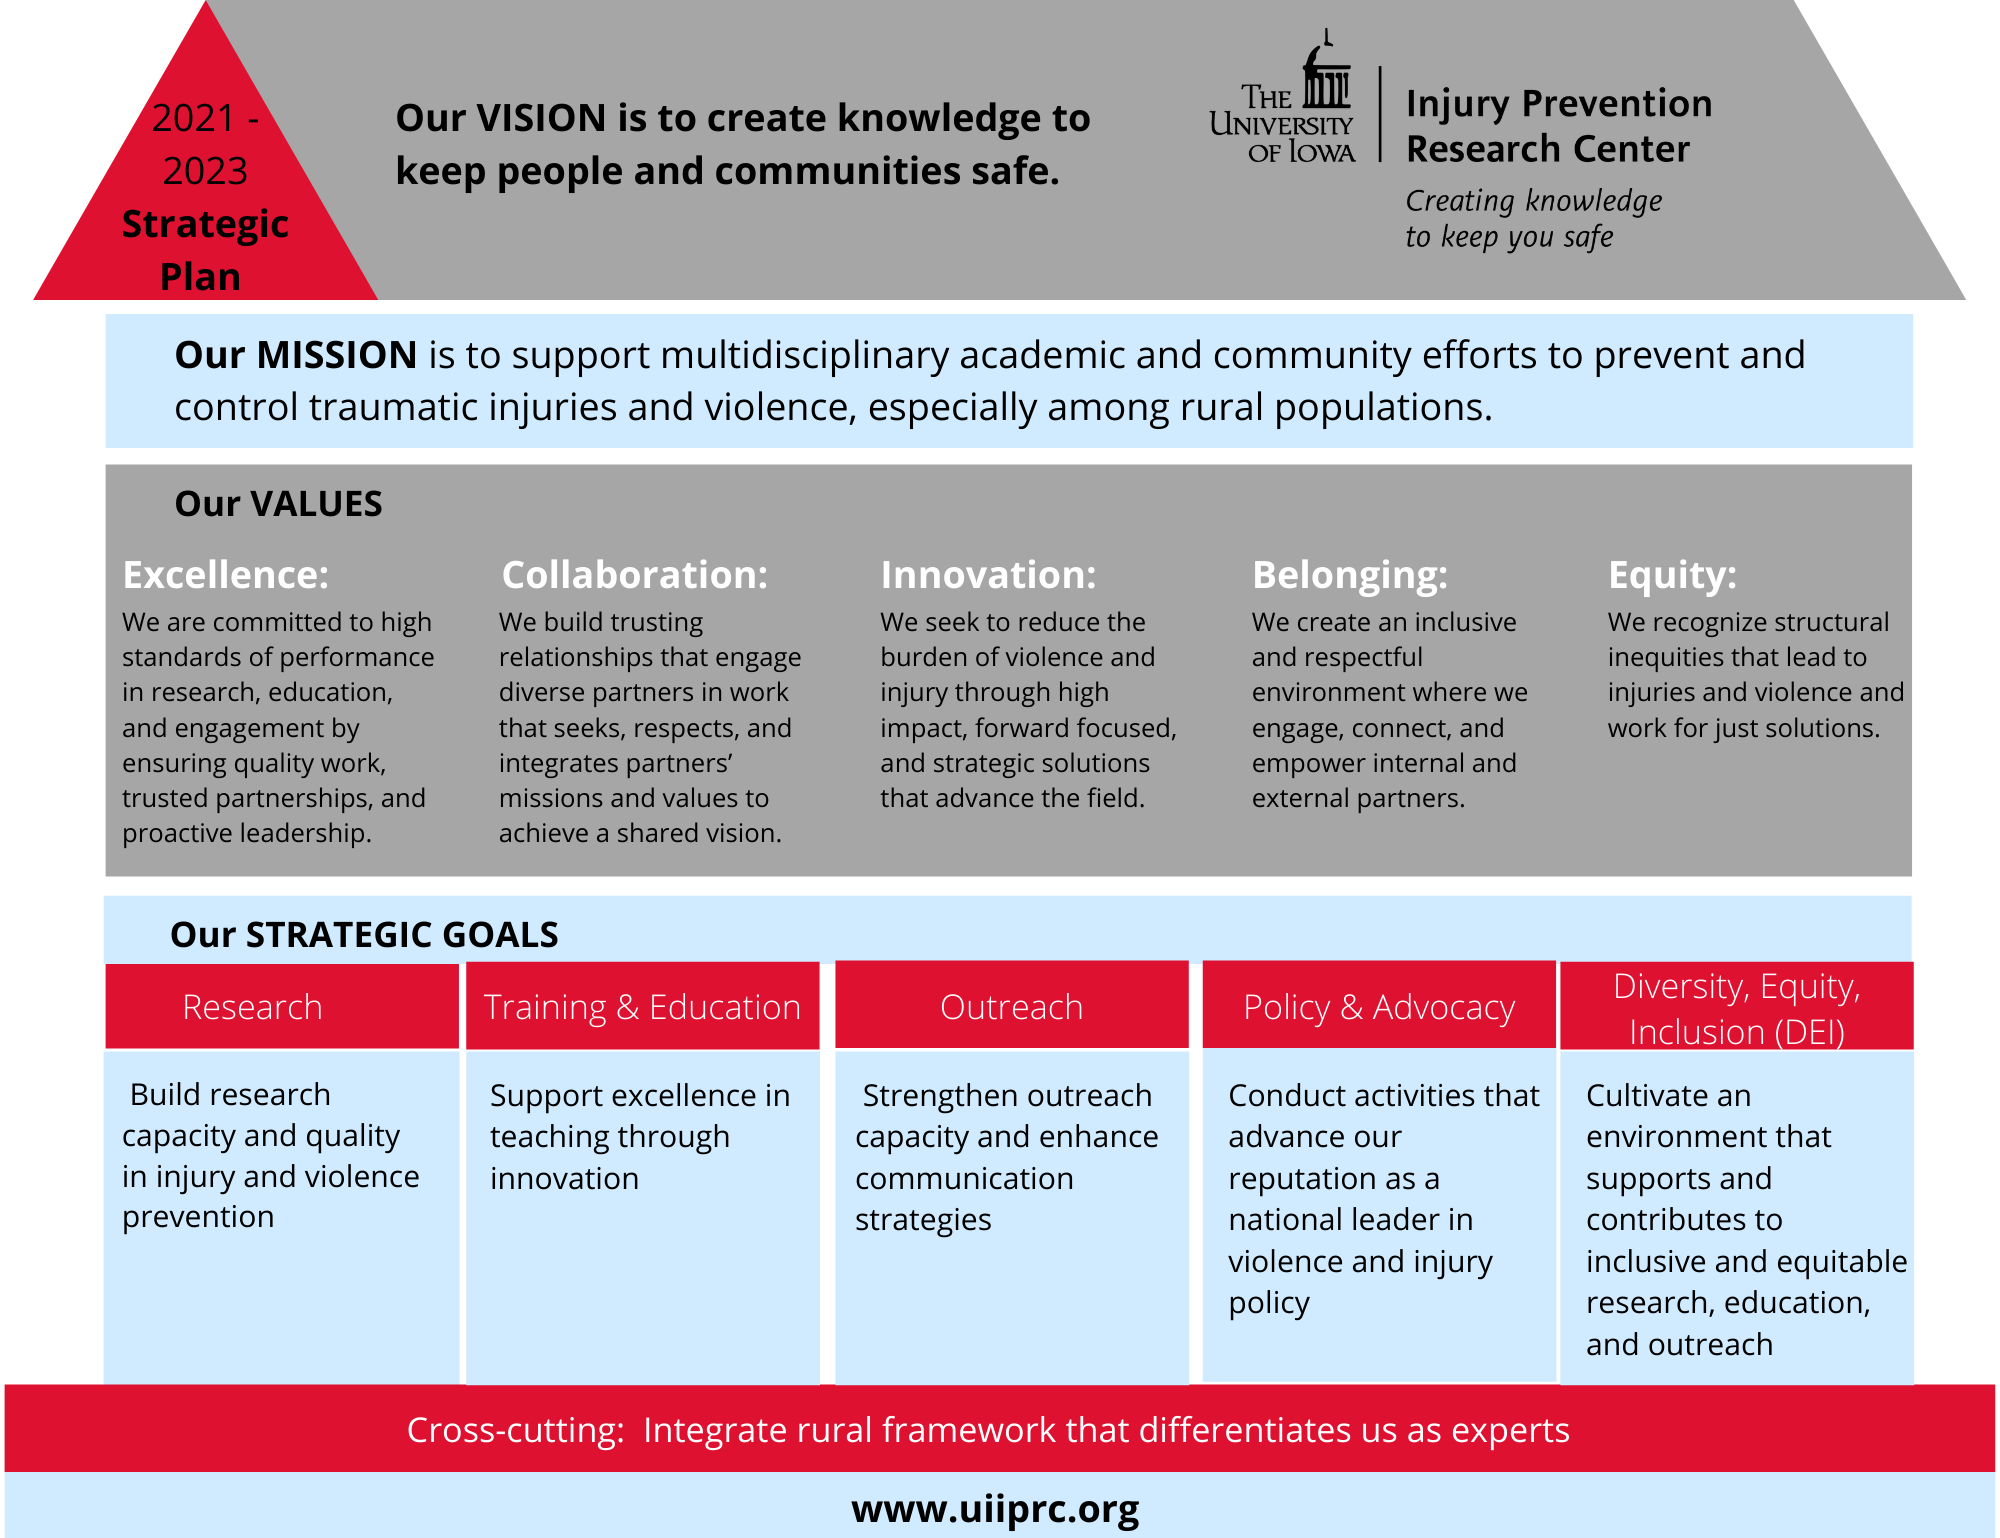 See our 2021-2023 Strategic Plan visual.